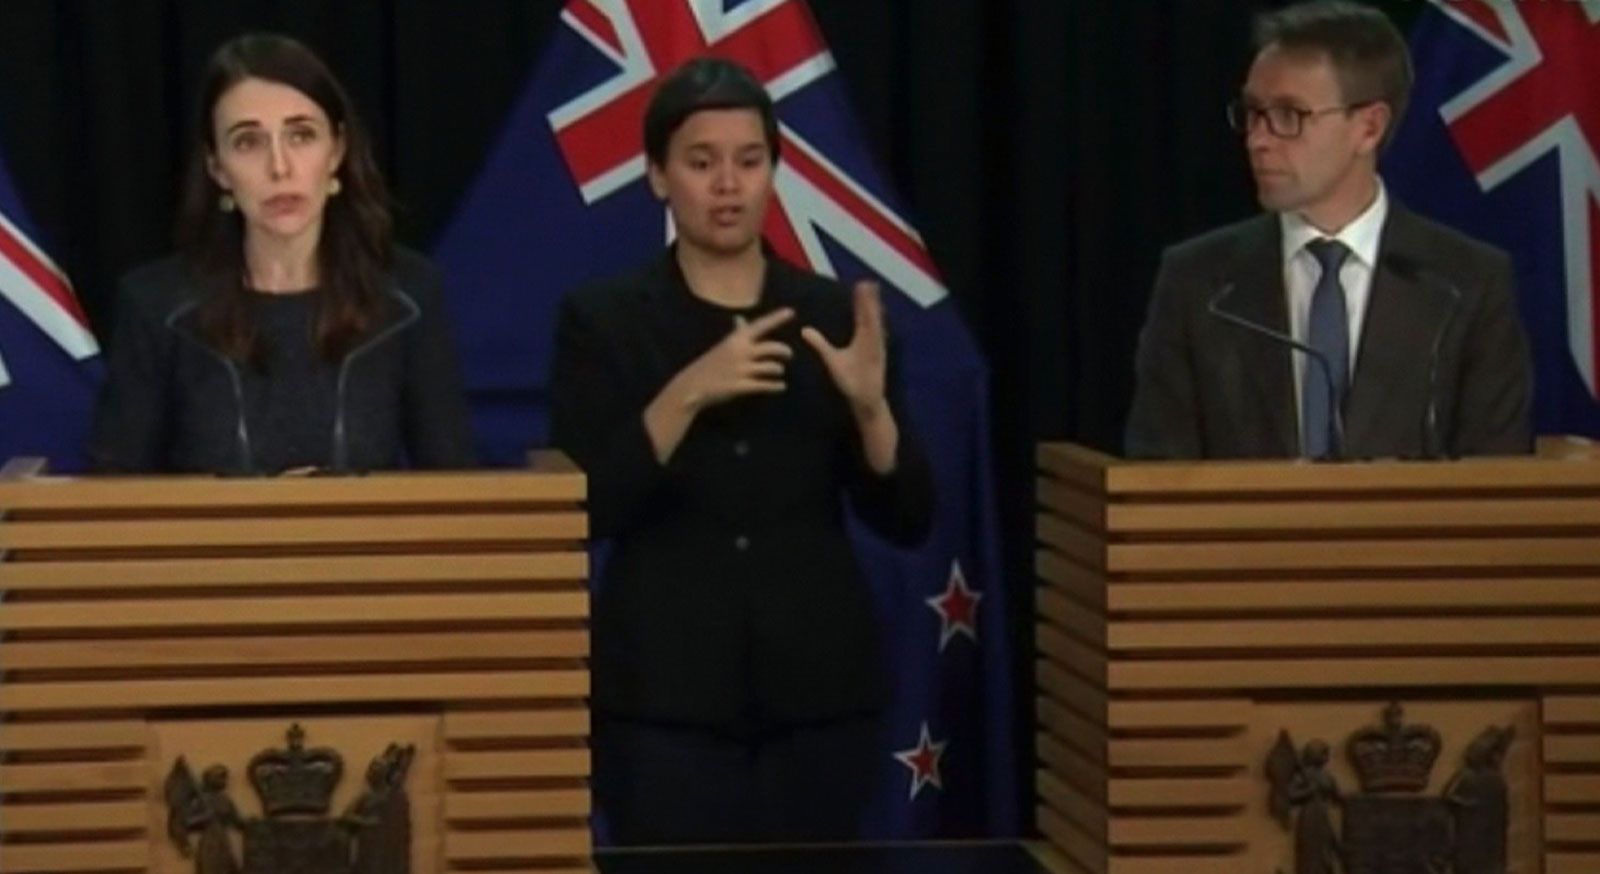 New Zealand Prime Minister Jacinda Ardern, left, and Director-General of Health Ashley Bloomfield, right, attend a news conference on August 11 in Wellington, New Zealand.